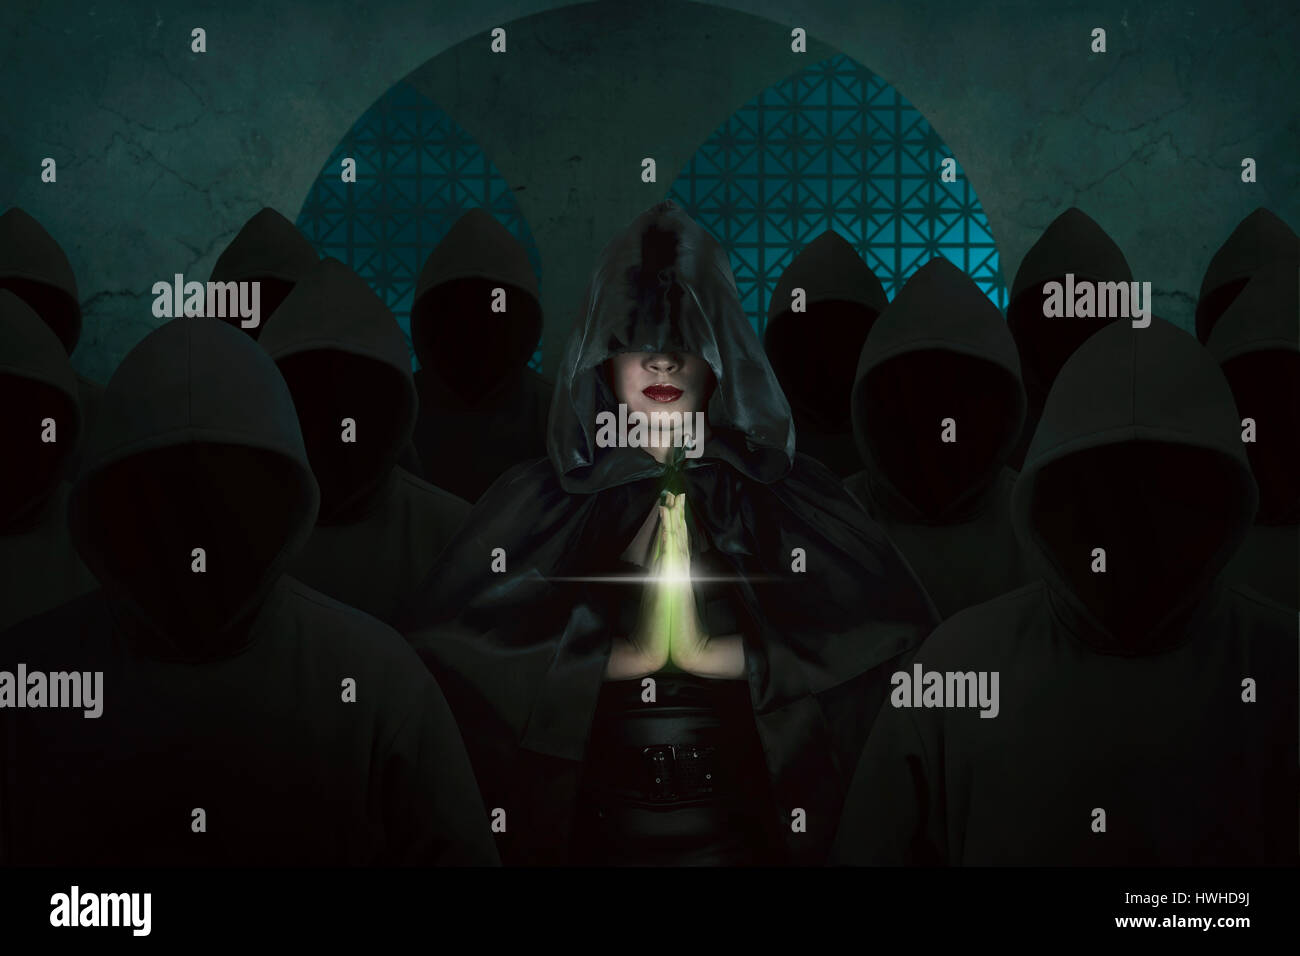 asian witch woman inside old castle in the dark room praying with